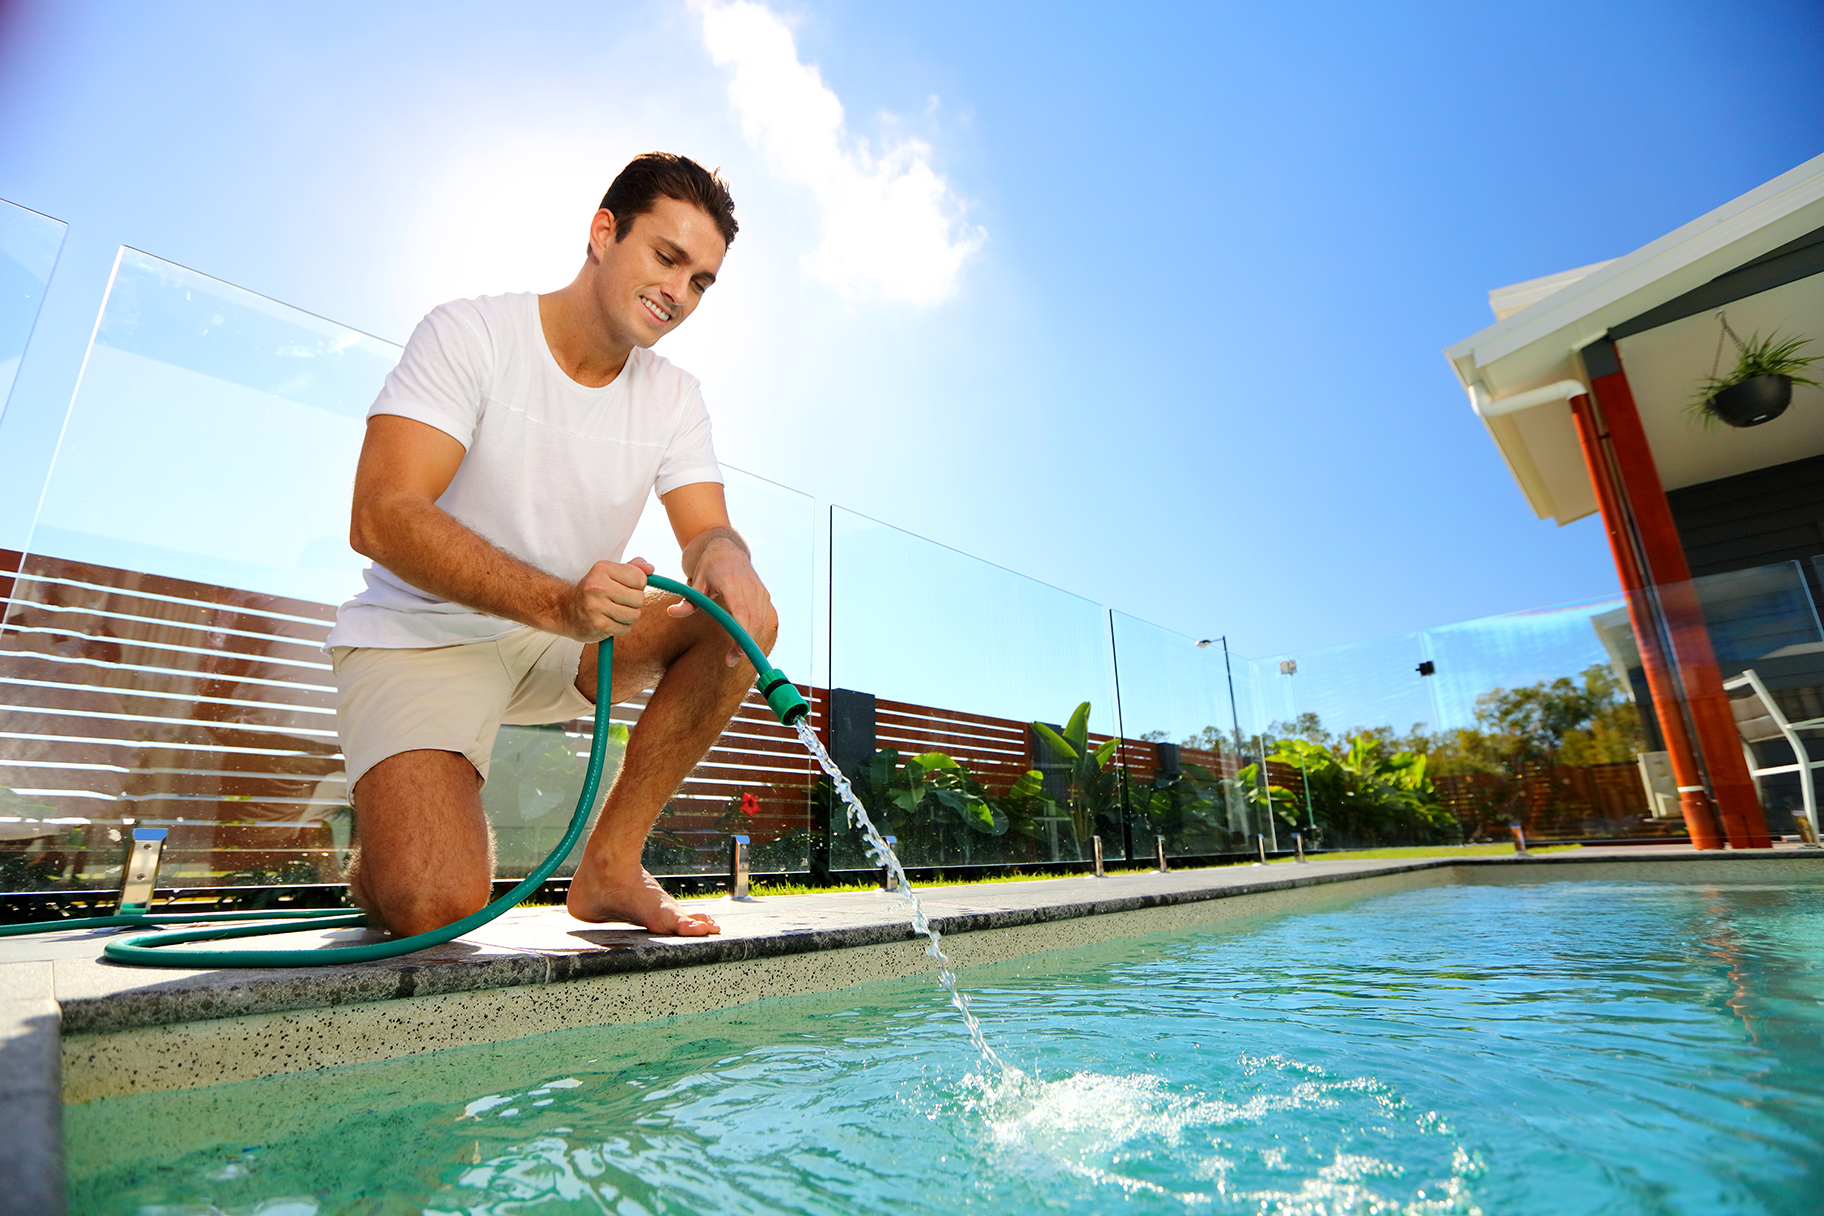 Man filling residential pool water up with hose